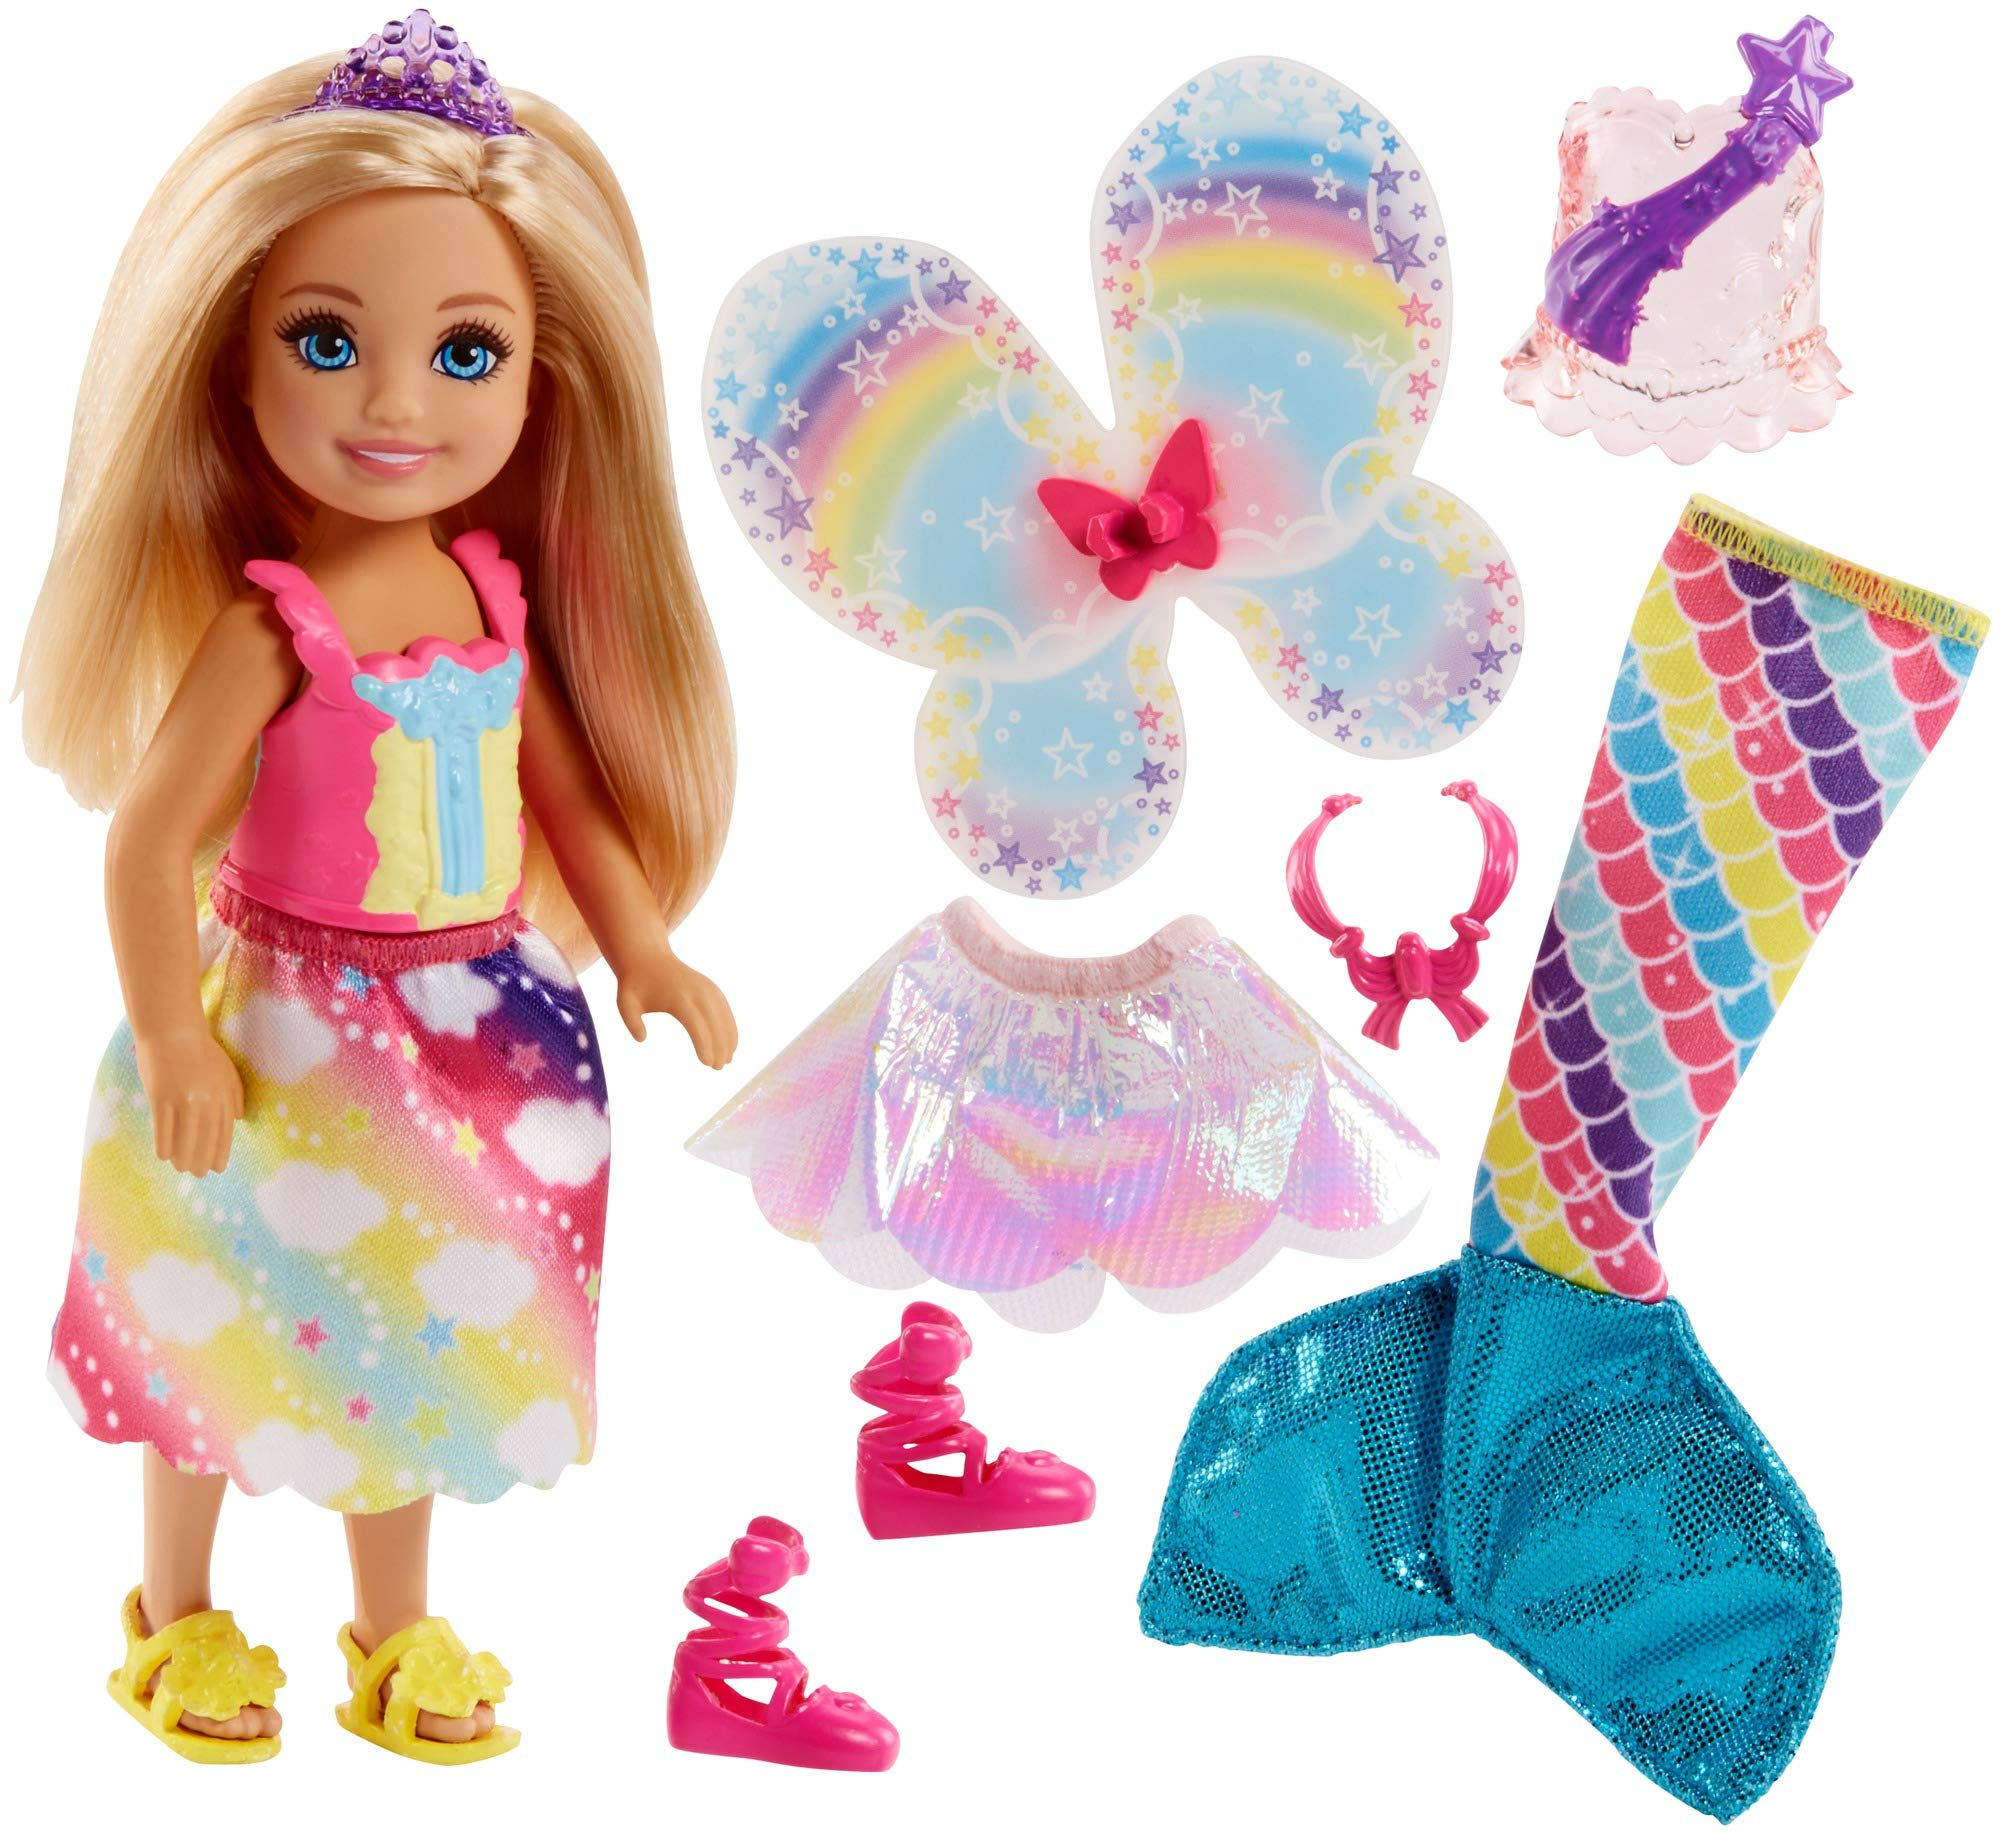 Barbie Dreamtopia Doll and Fashions